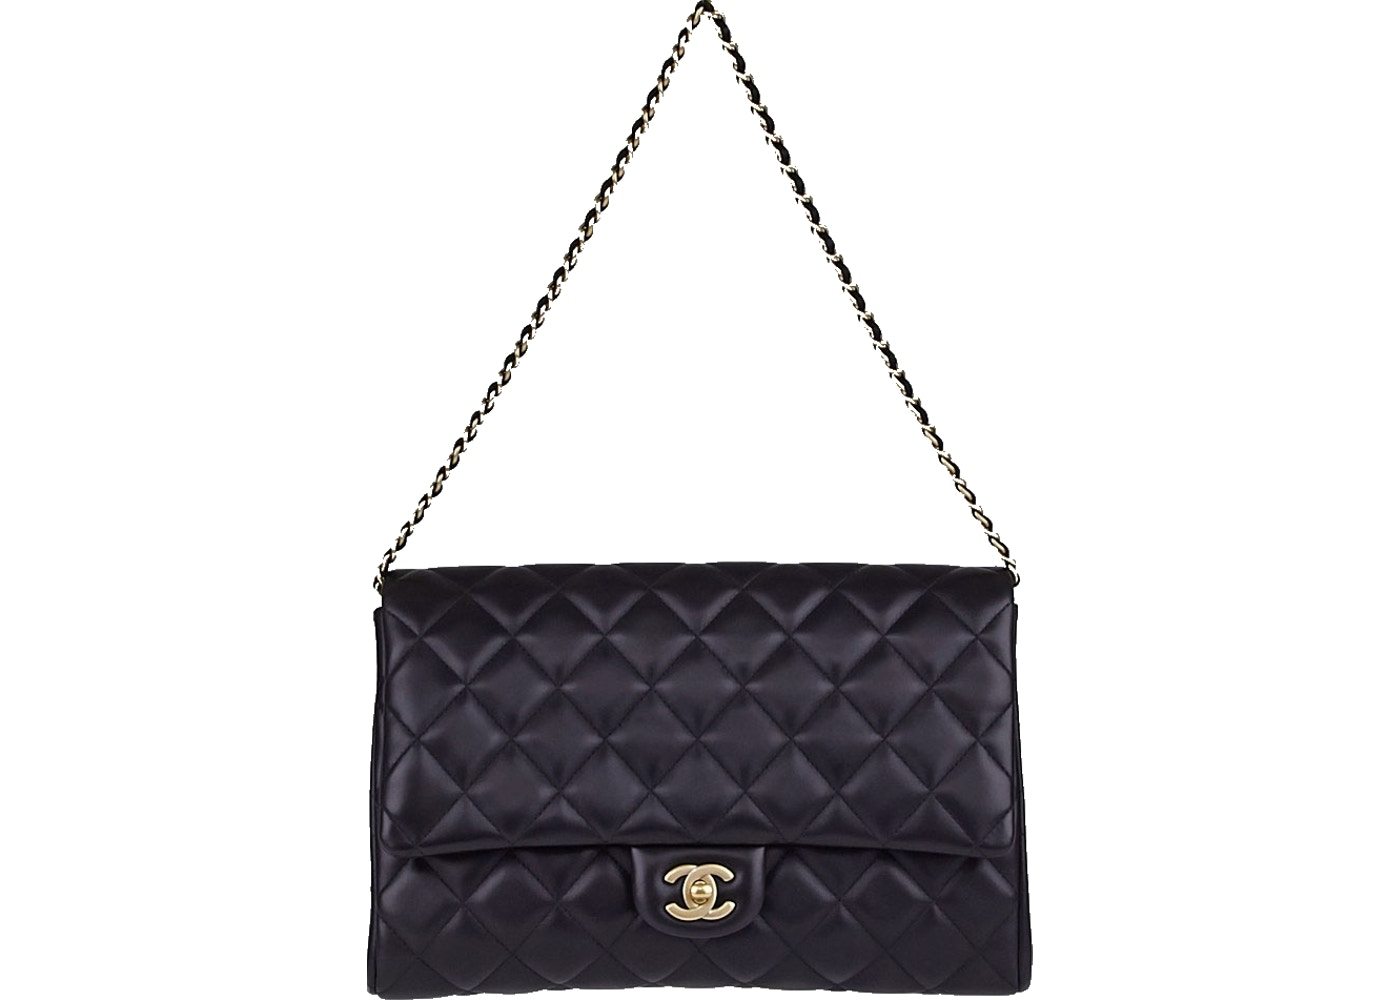 fce44a9bd1b5 Sell. or Ask. View All Bids. Chanel Chain Clutch Classic Single Flap  Quilted Black